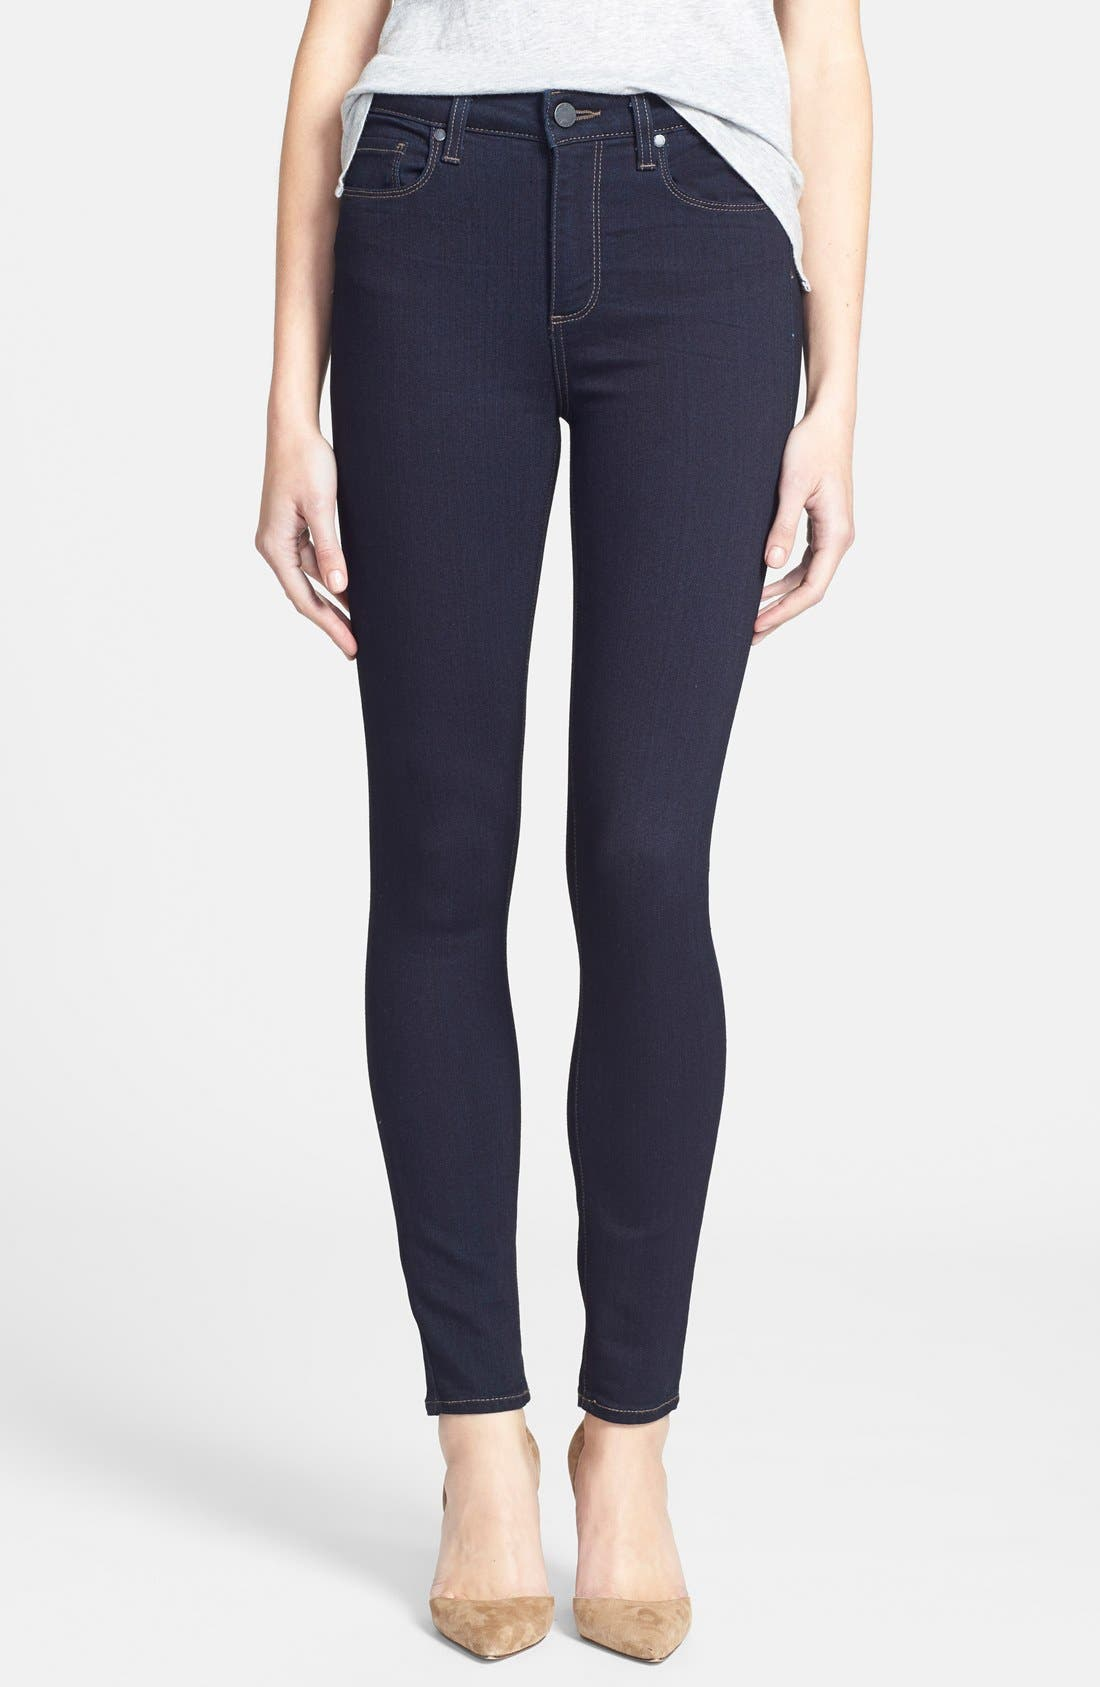 Alternate Image 1 Selected - Paige Denim 'Transcend - Hoxton' High Rise Ankle Jeans (Rockwell)